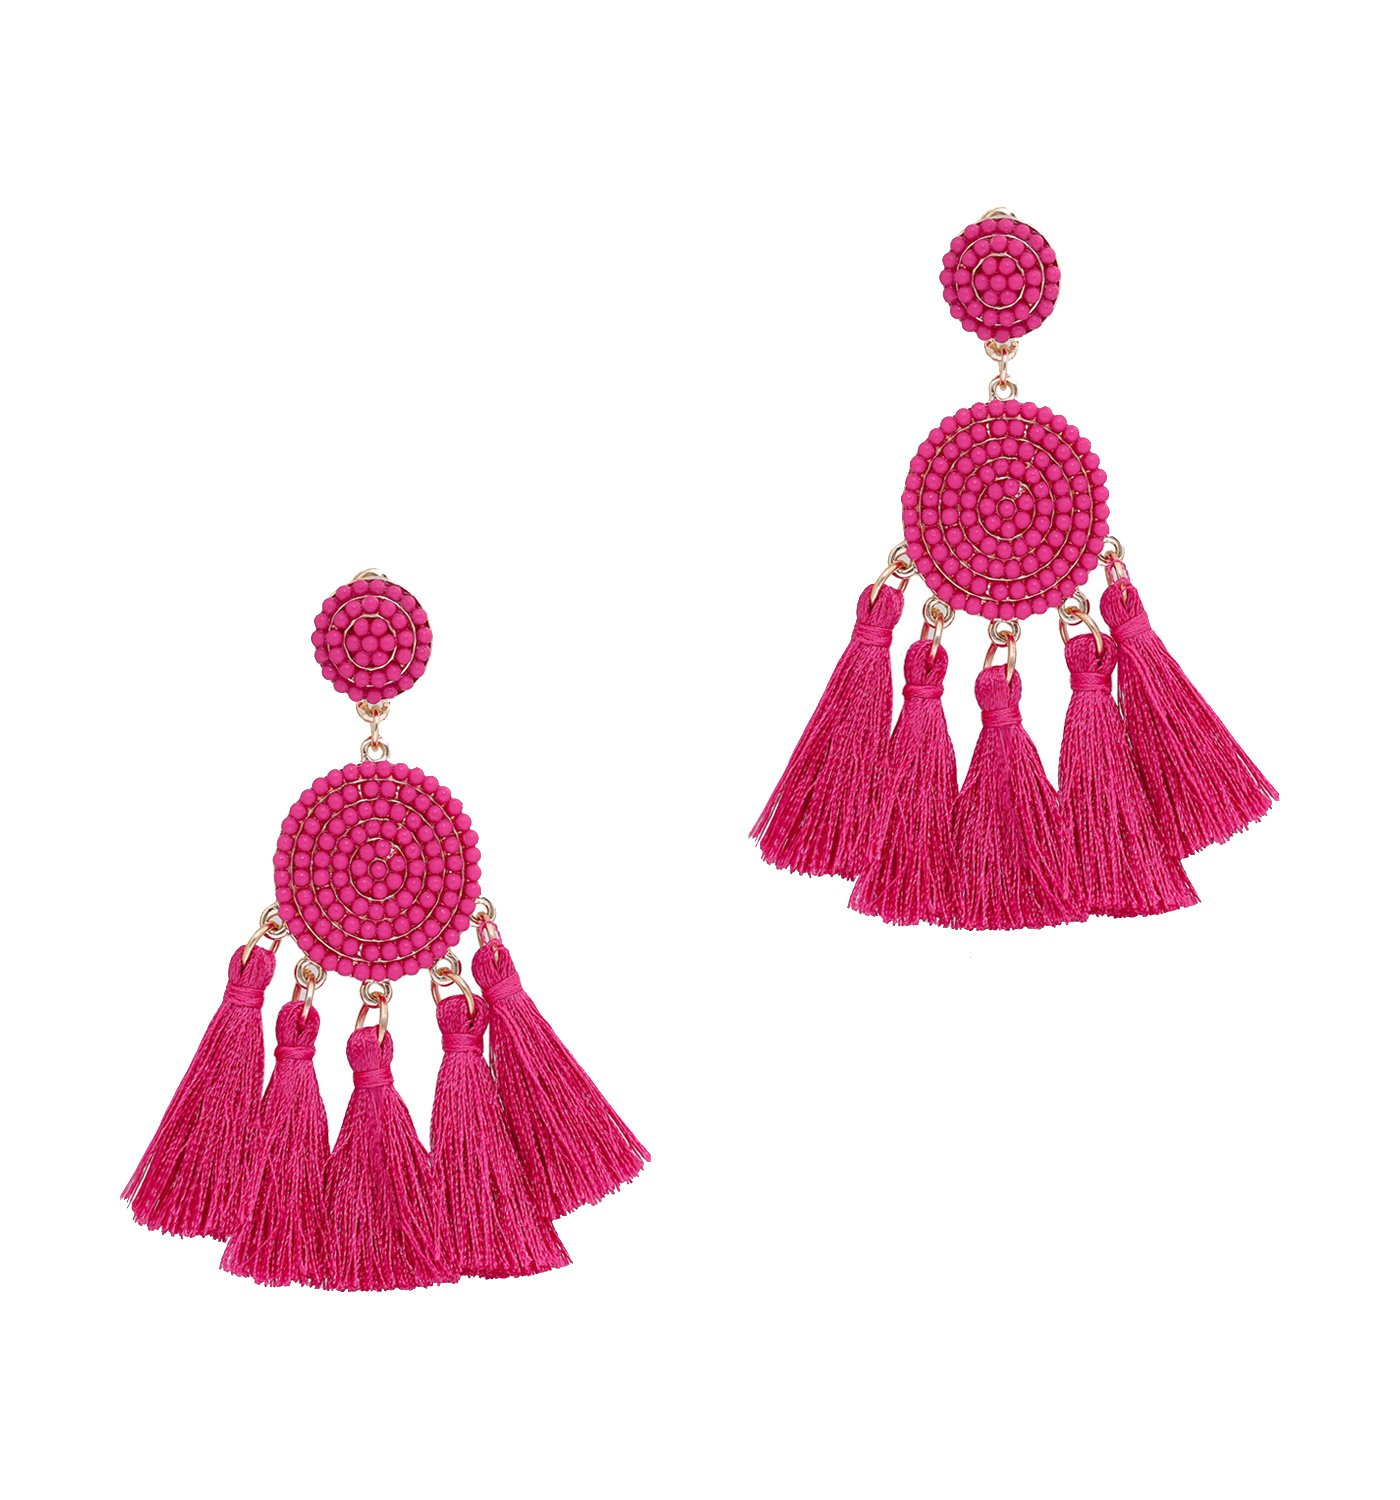 Women's Dangle Earrings Bohemian Fringe Tassel Earrings Statement Beaded Drop Earrings Soiree Jewelry (Hot pink)